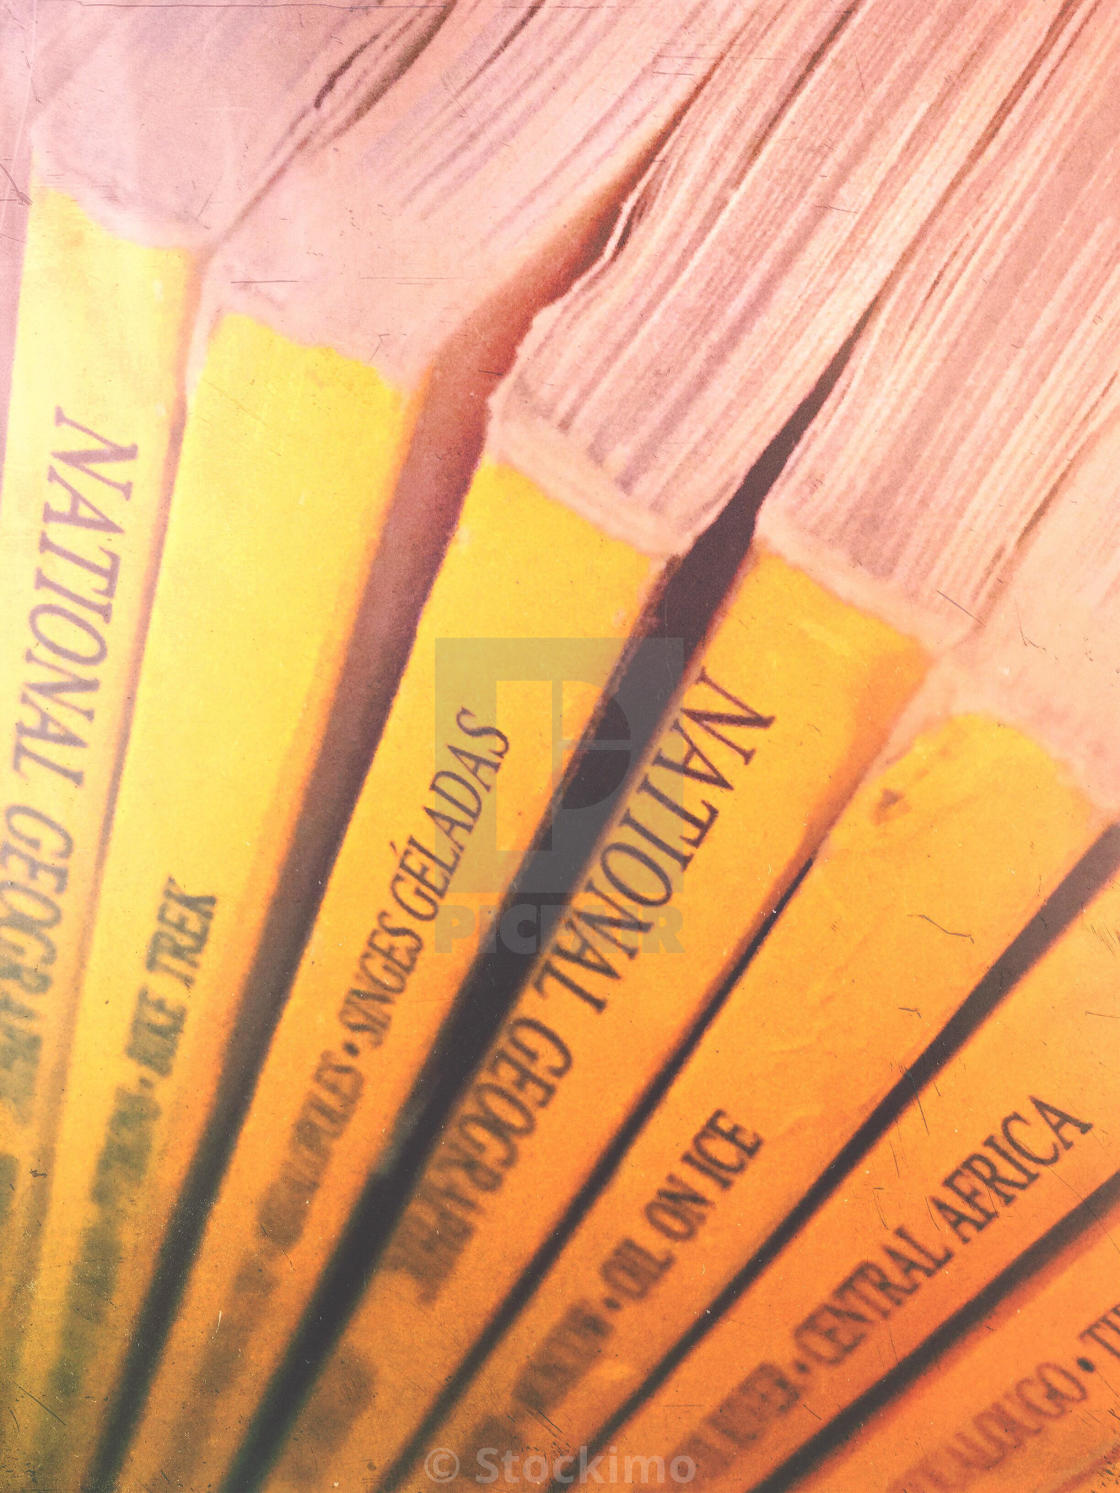 Closeup of National Geographic magazines - License for £31.00 on Picfair